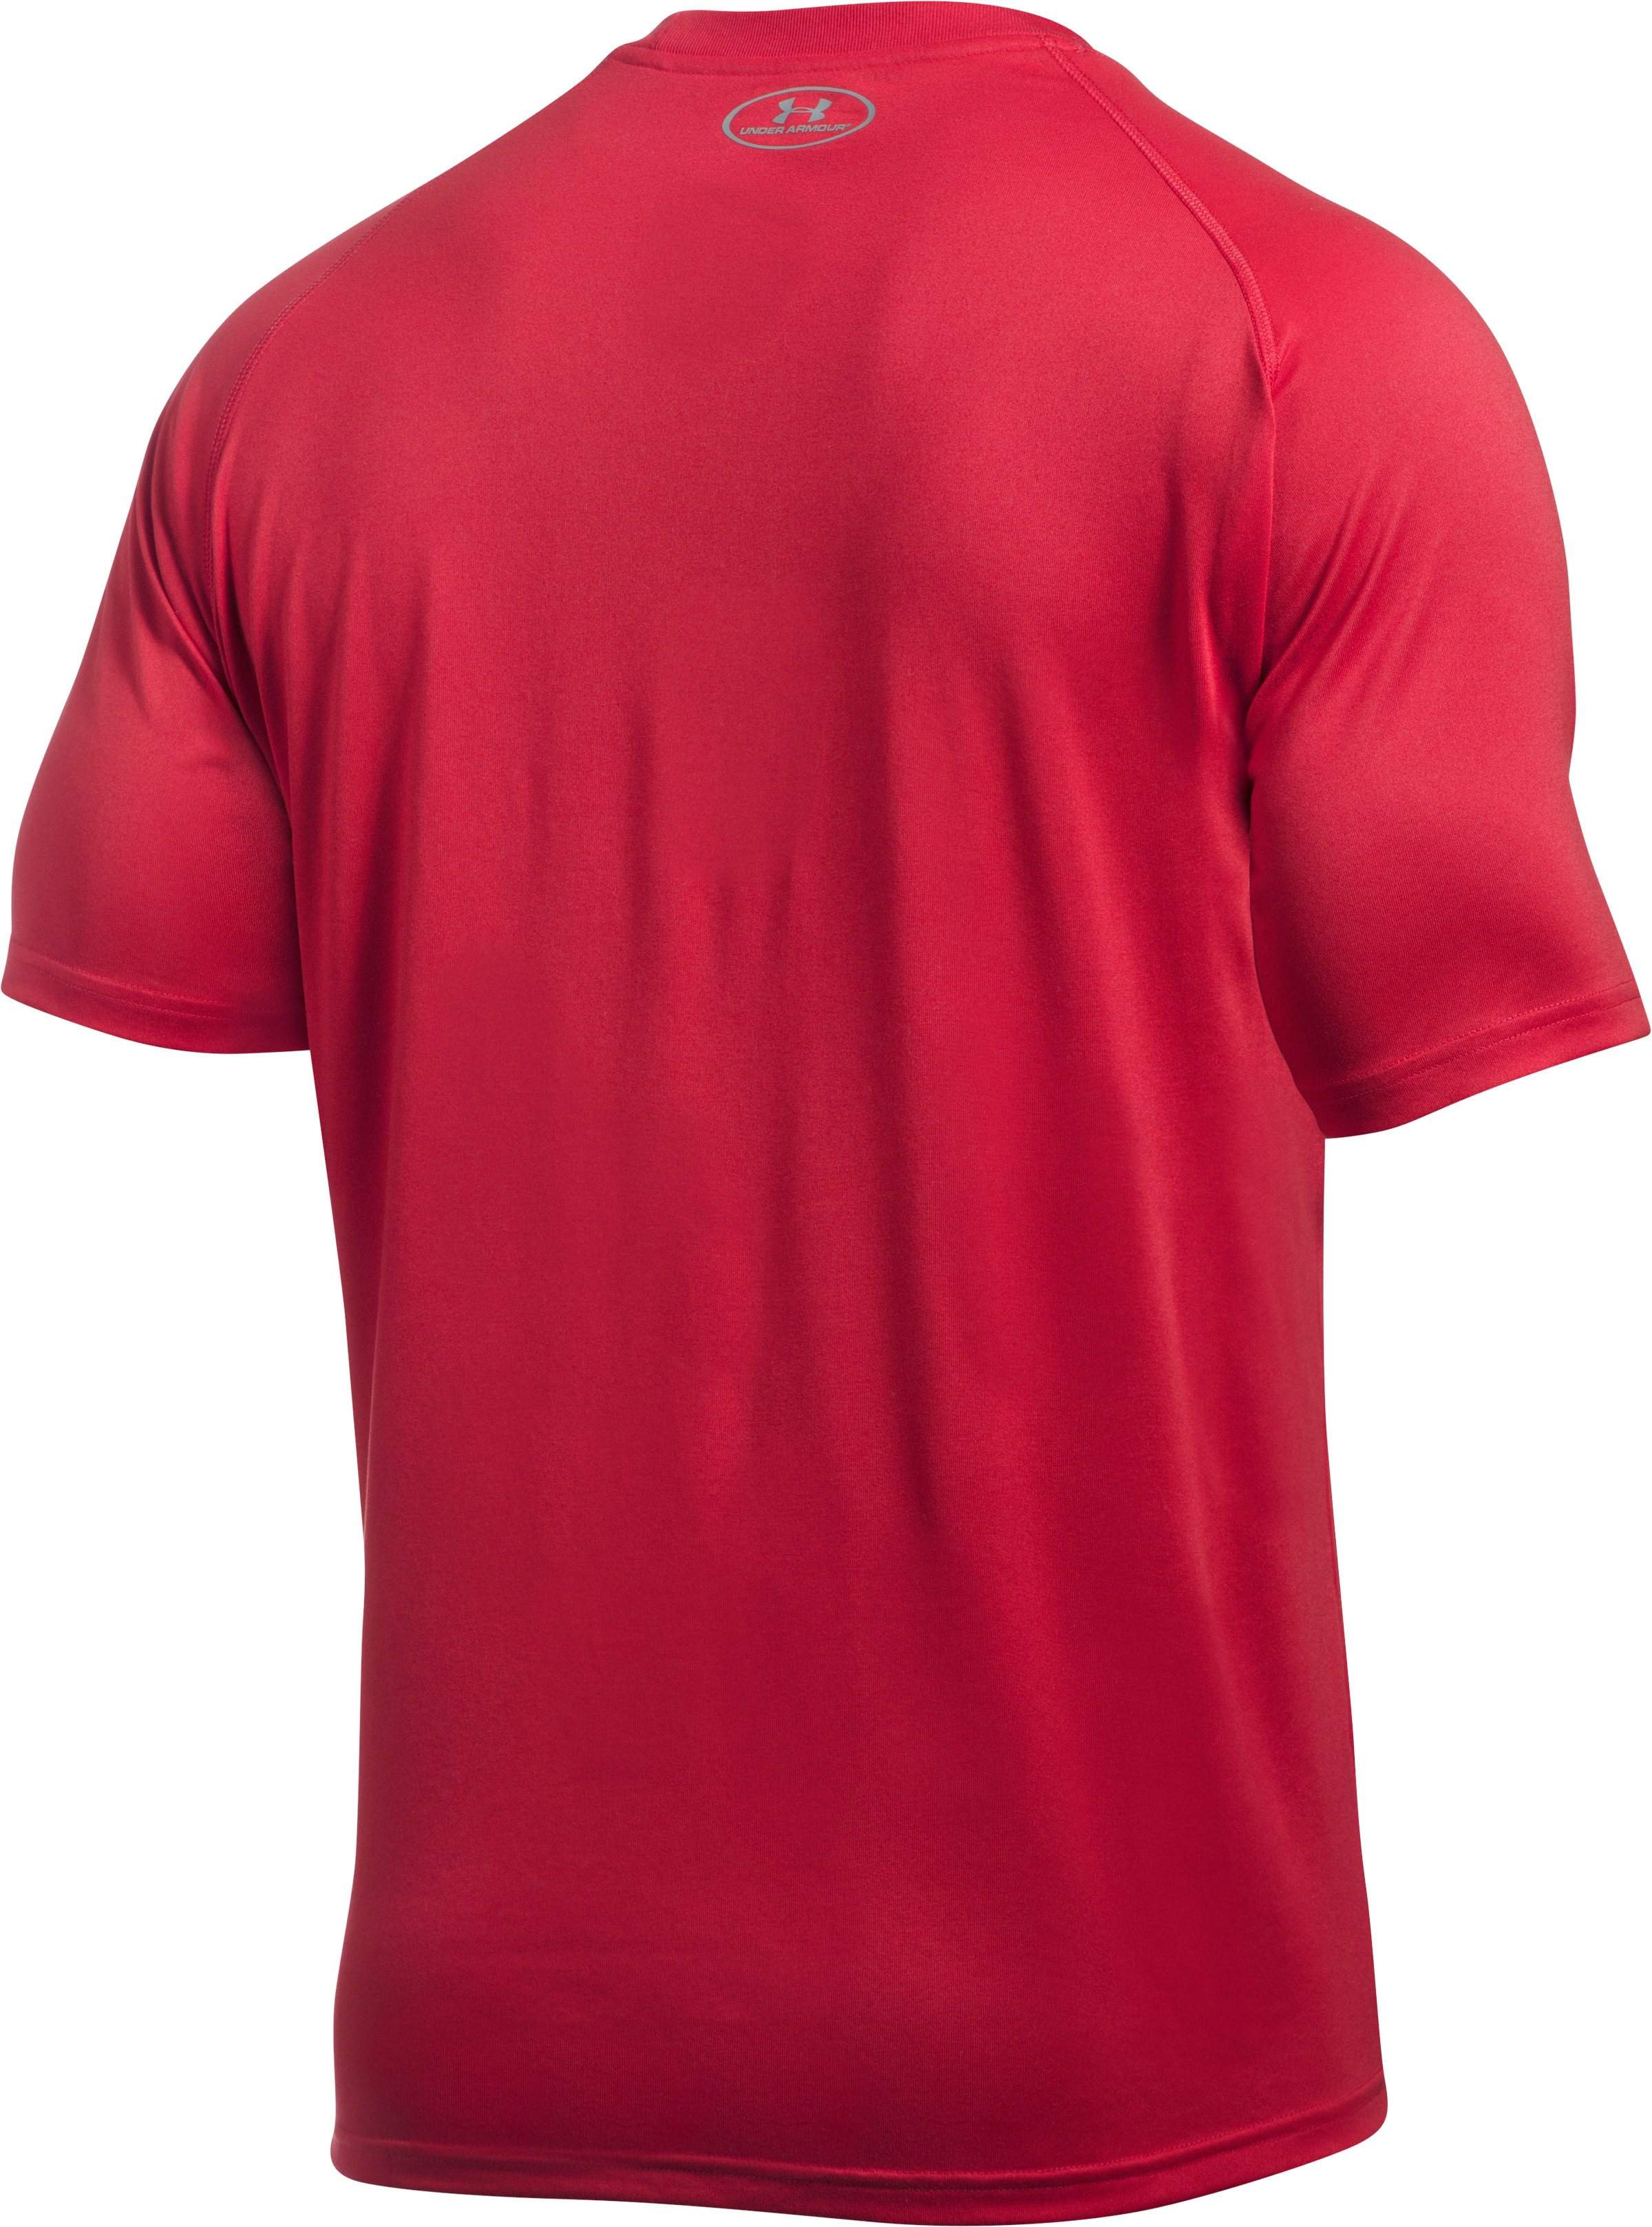 Men's St. John's UA Tech™ Team T-Shirt, Red,